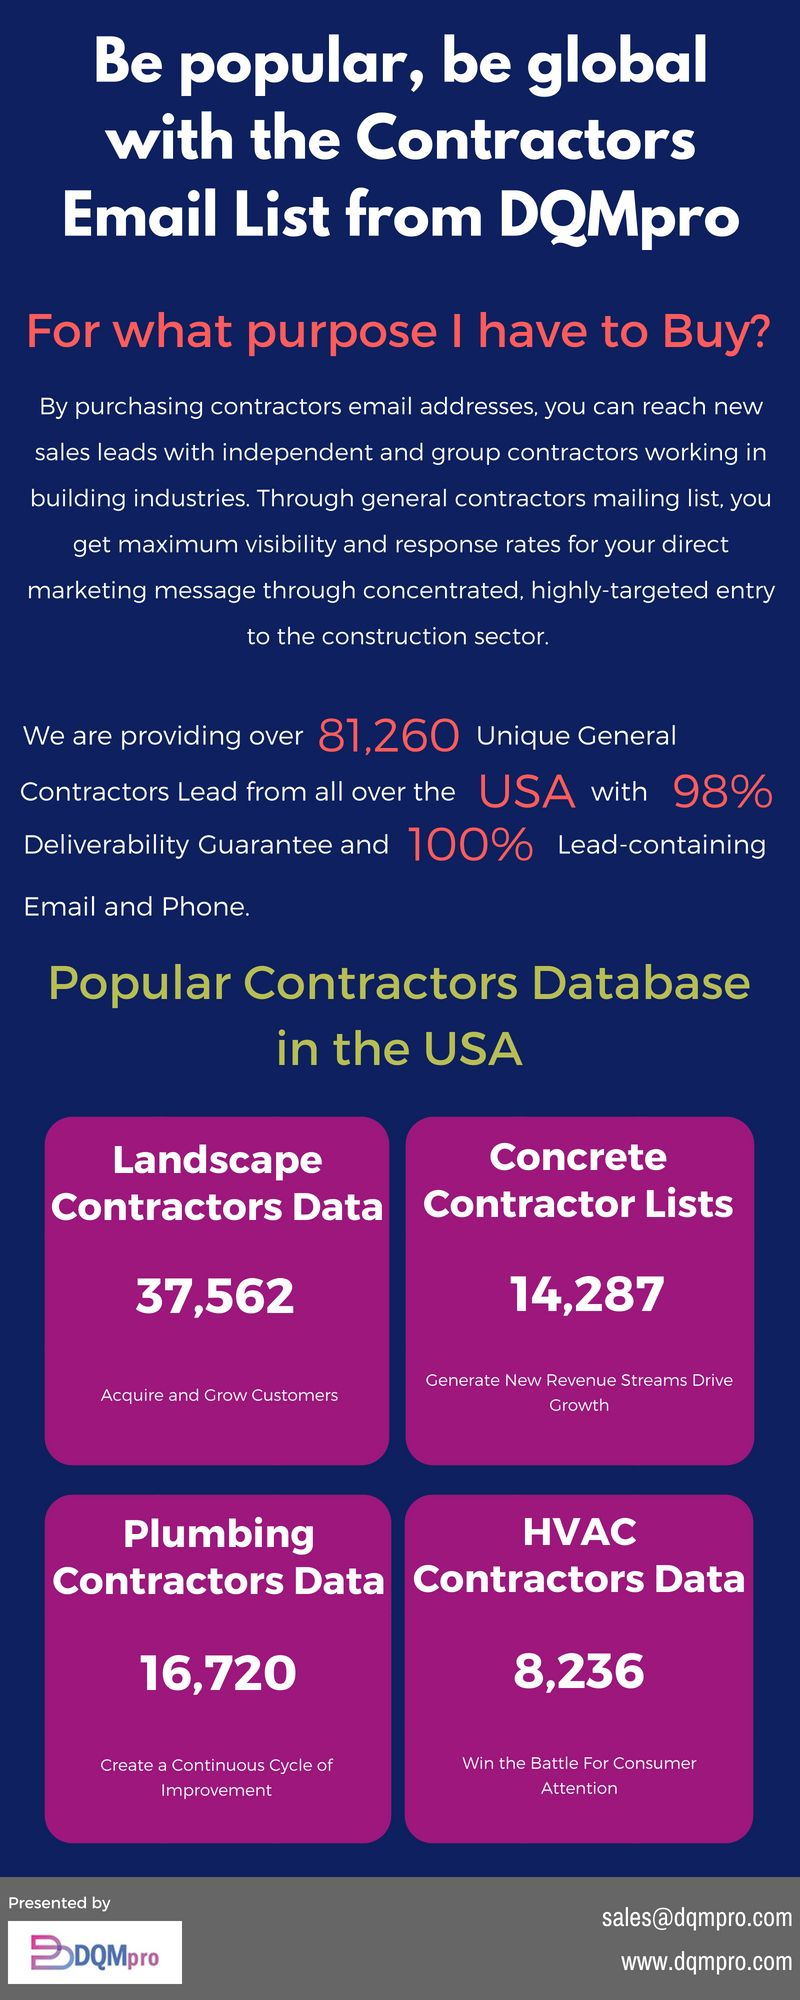 Be popular, be global with the Contractors Email List from